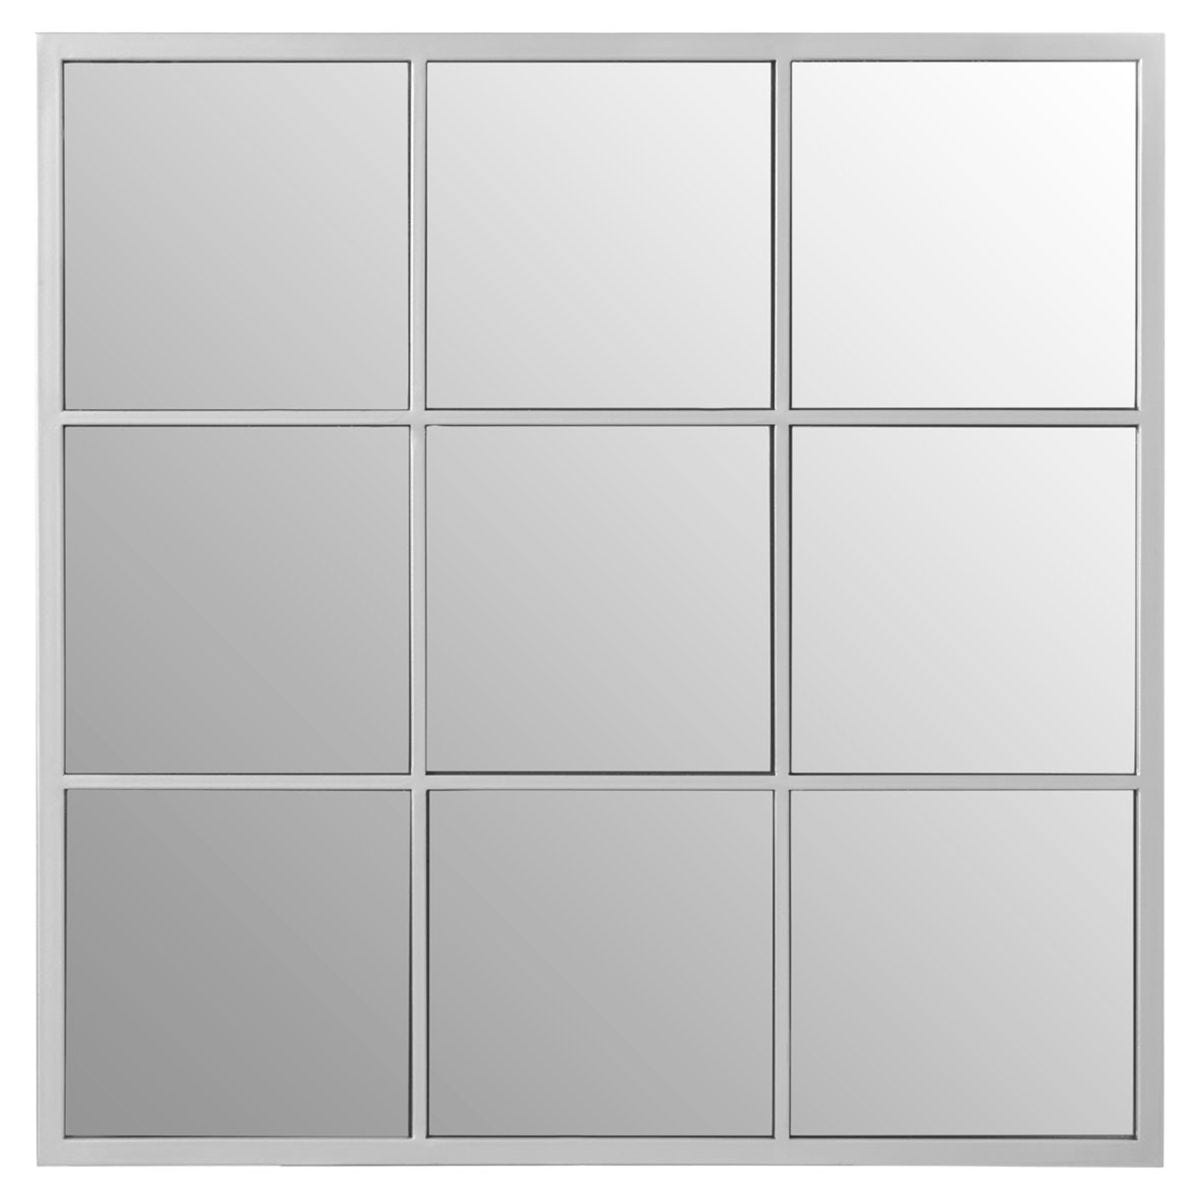 Premier Housewares Descartes Square Grid Wall Mirror - Silver Finish Frame